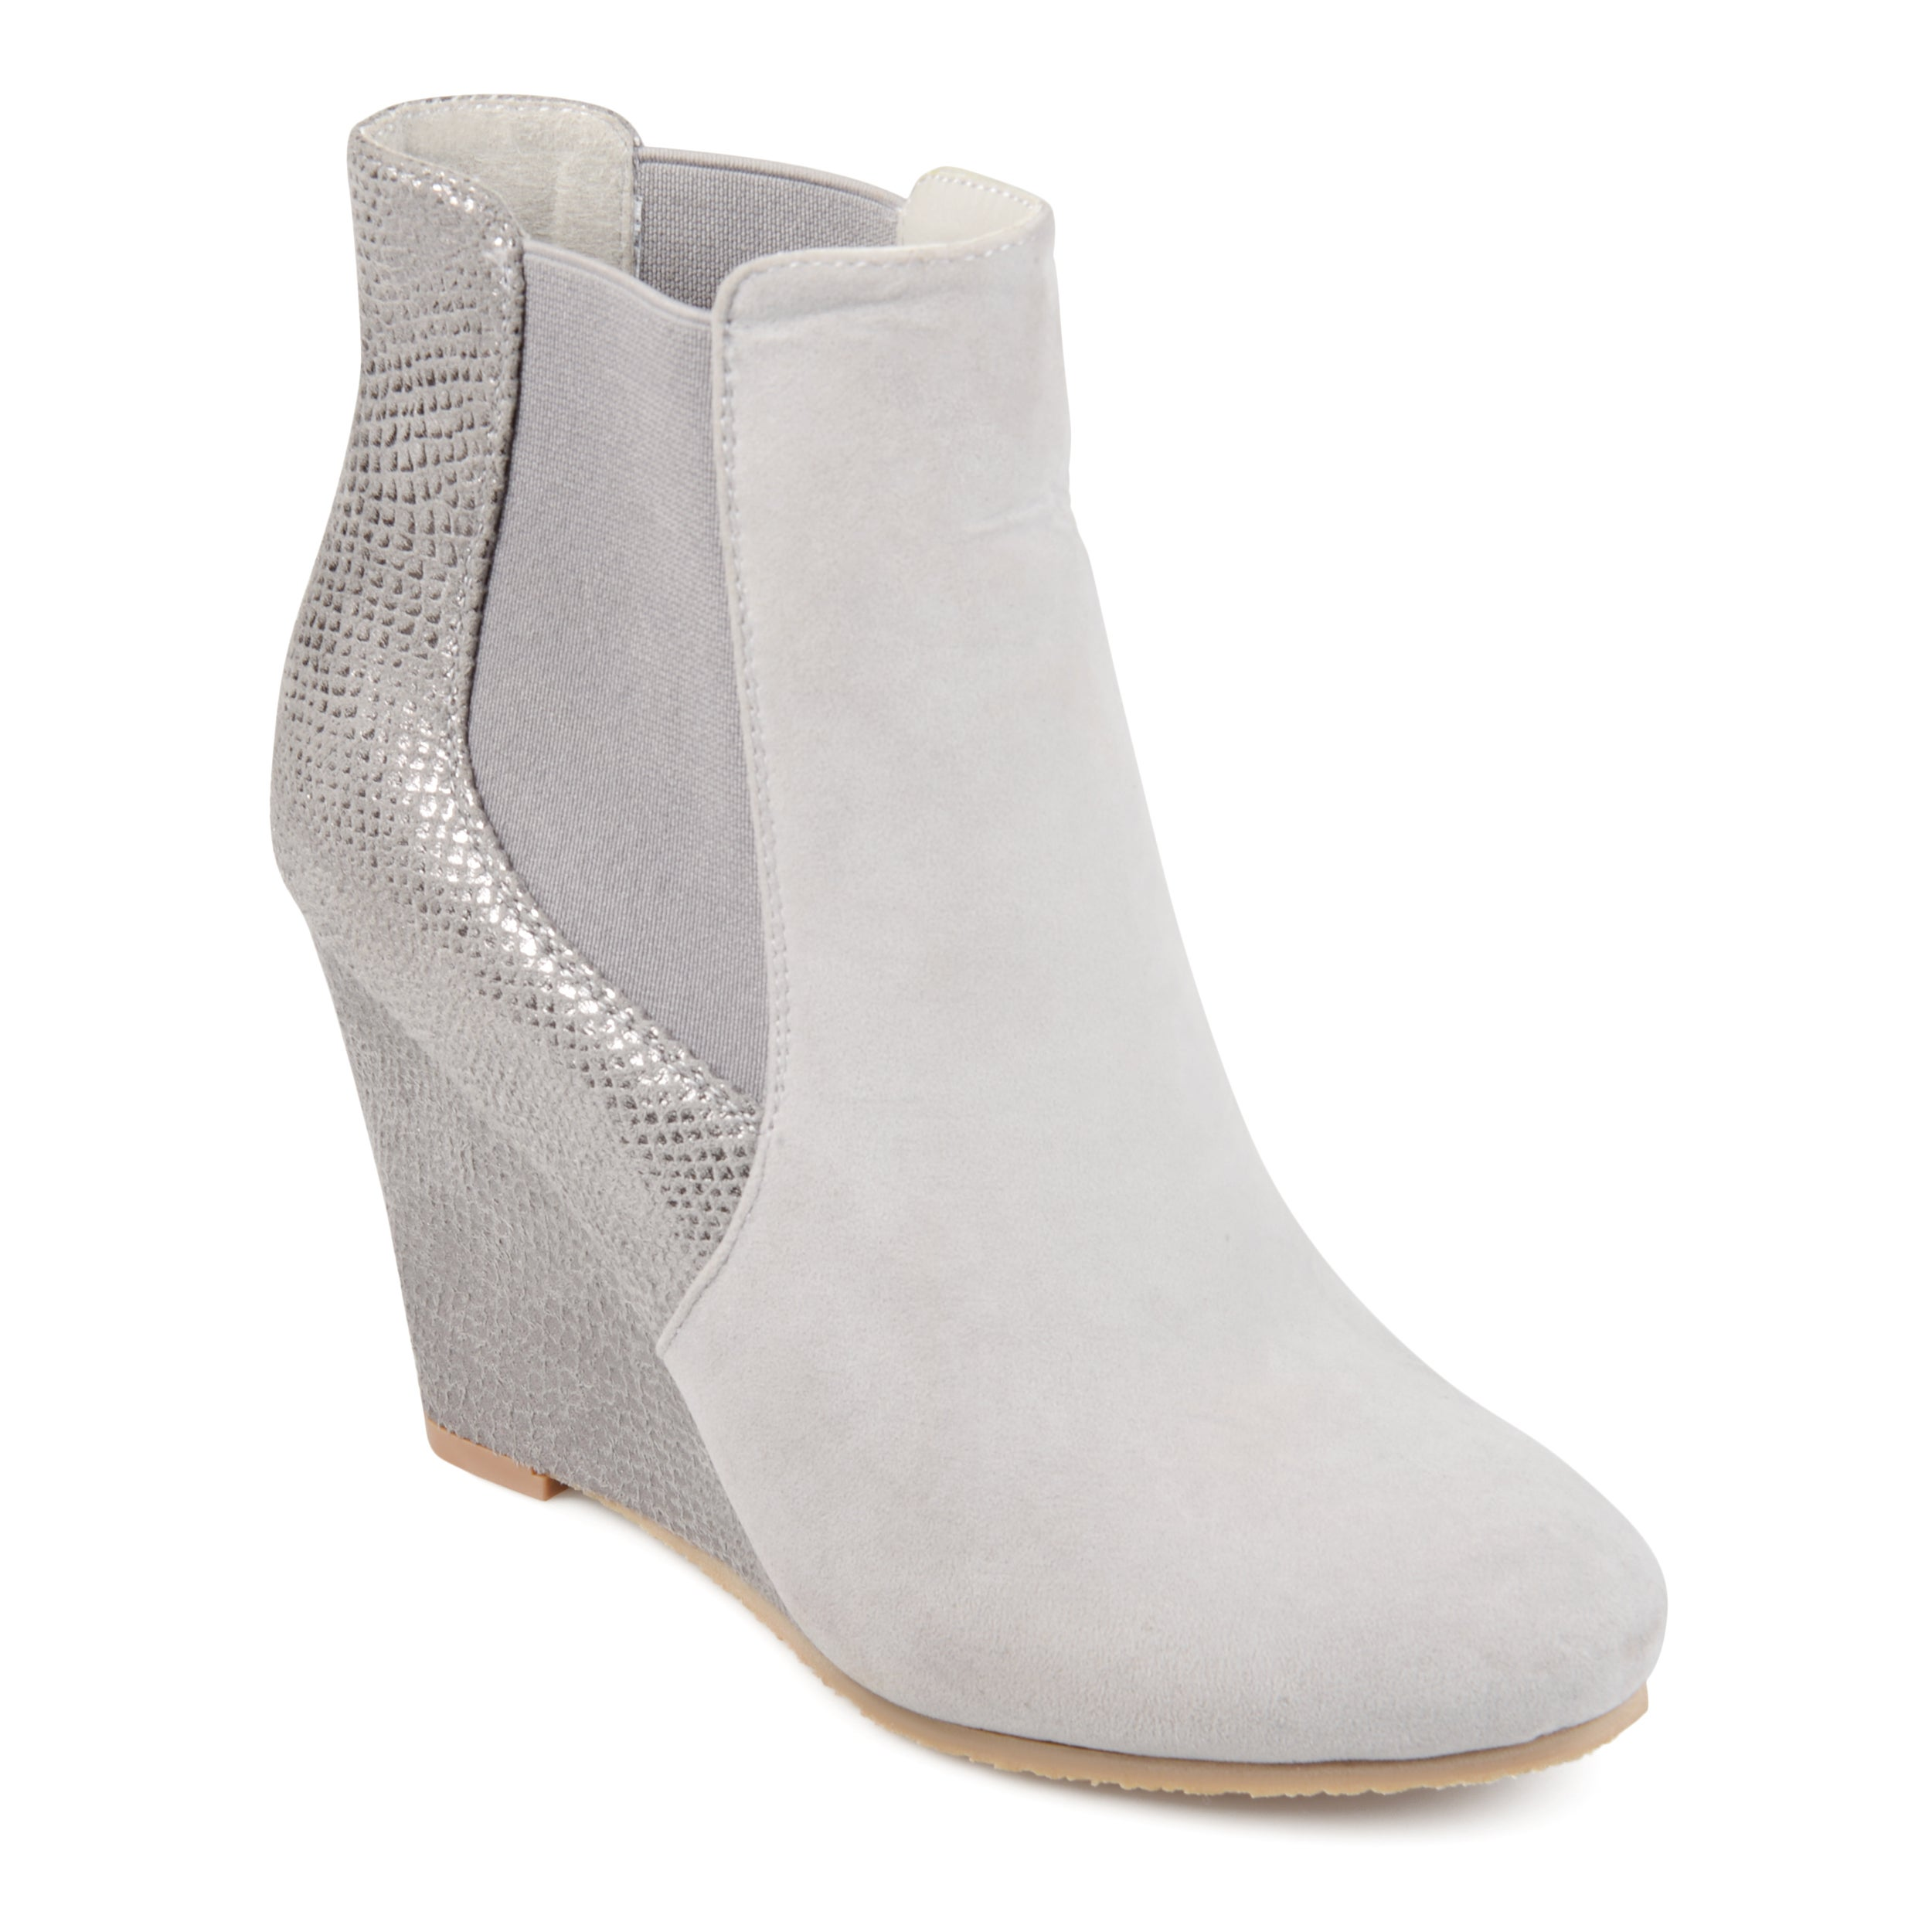 d213cf4bd538 Details about Journee Collection Women s  Linae  Round Toe Wedge Booties